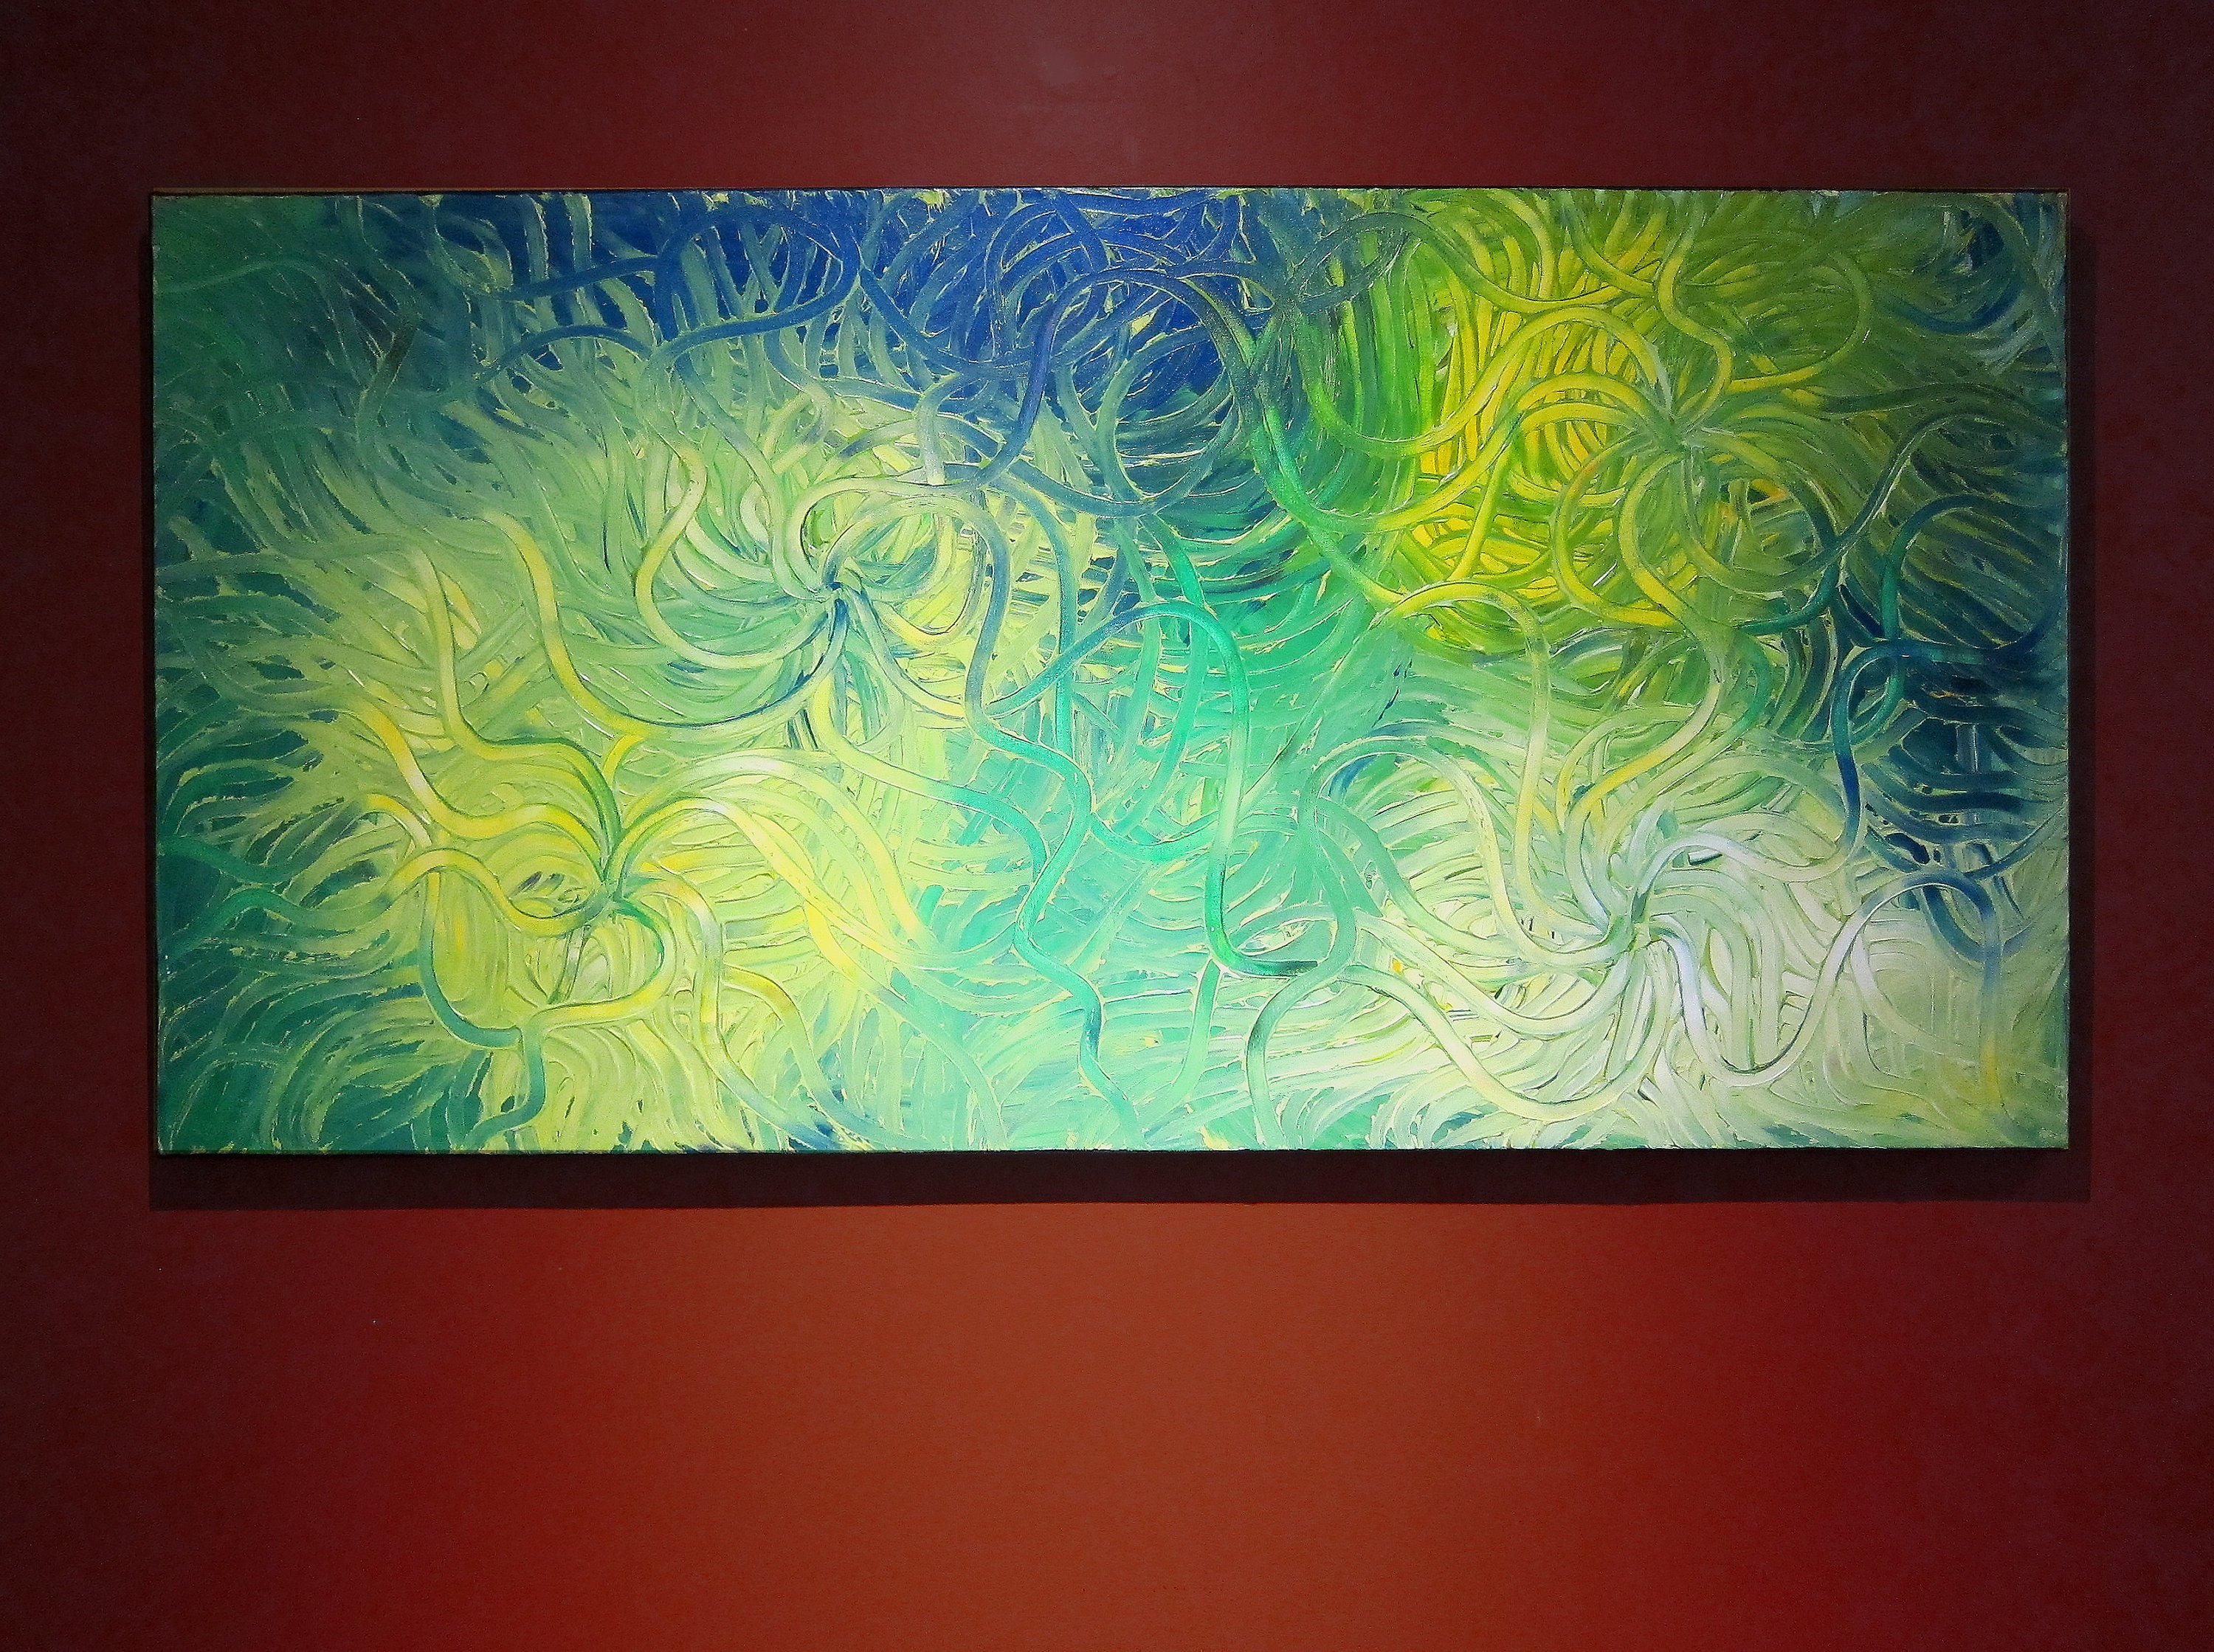 Large Green Abstract Painting Textured Wall Art Original Artwork Home Or Office Decor Ready To Ship 48x24